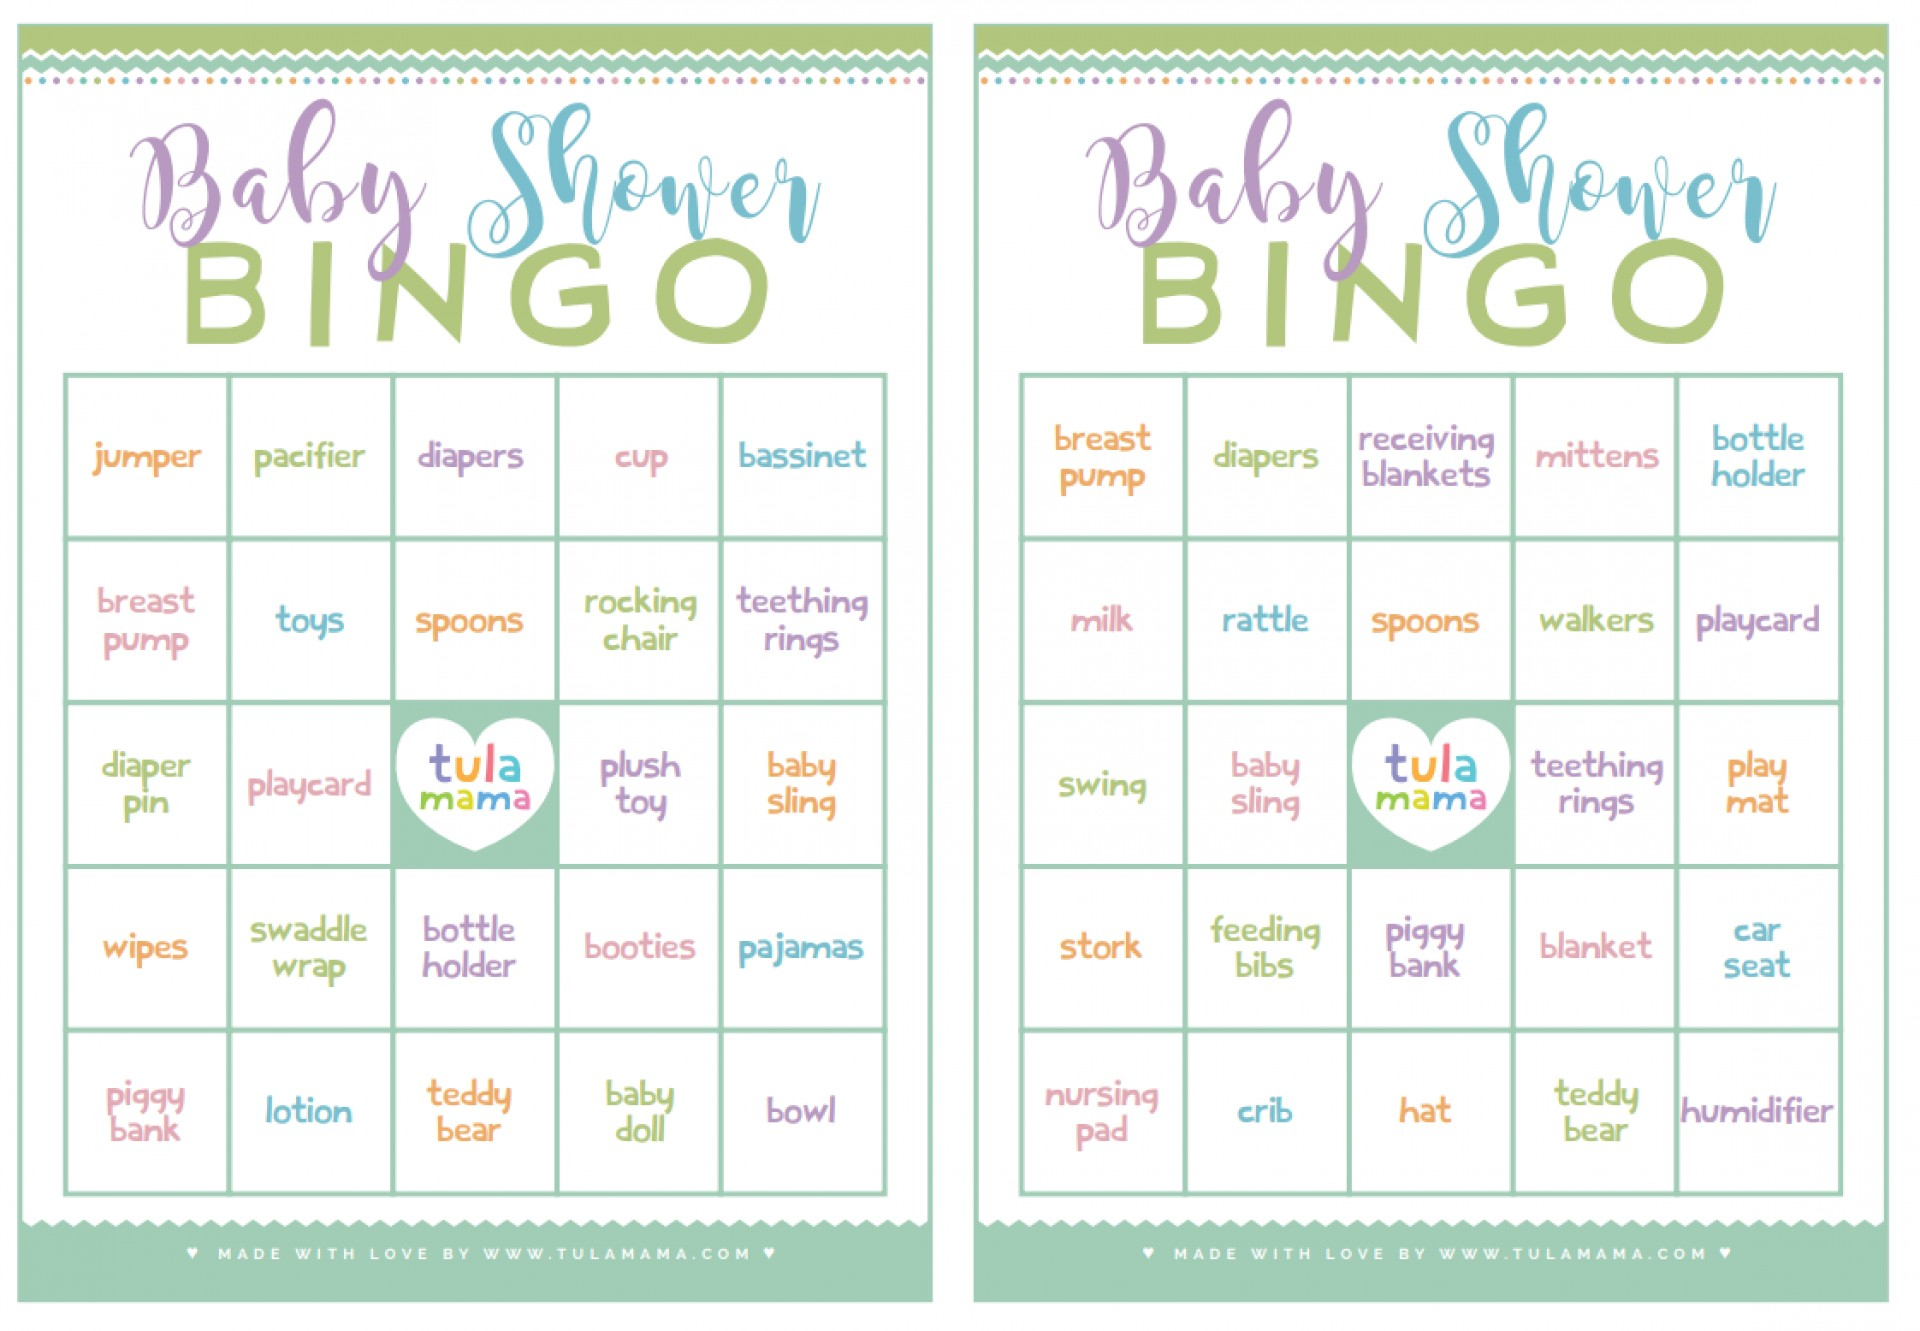 009 Free Dowload Baby Shower Bingo Template Wondrous Ideas Cards - Free Printable Baby Shower Bingo